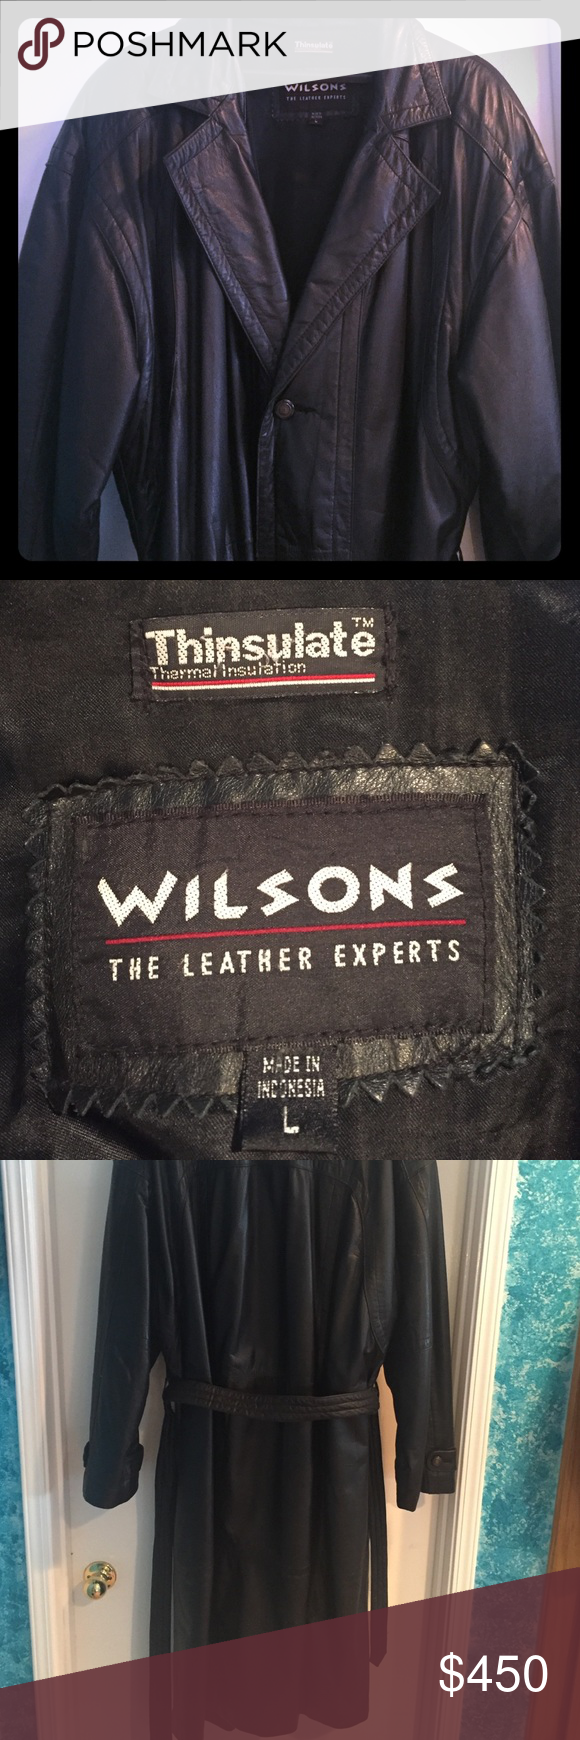 1998 Wilson Thinsulate Leather Trench Coat Leather Trench Coat Wilsons Leather Wilsons Leather Jacket [ 1740 x 580 Pixel ]